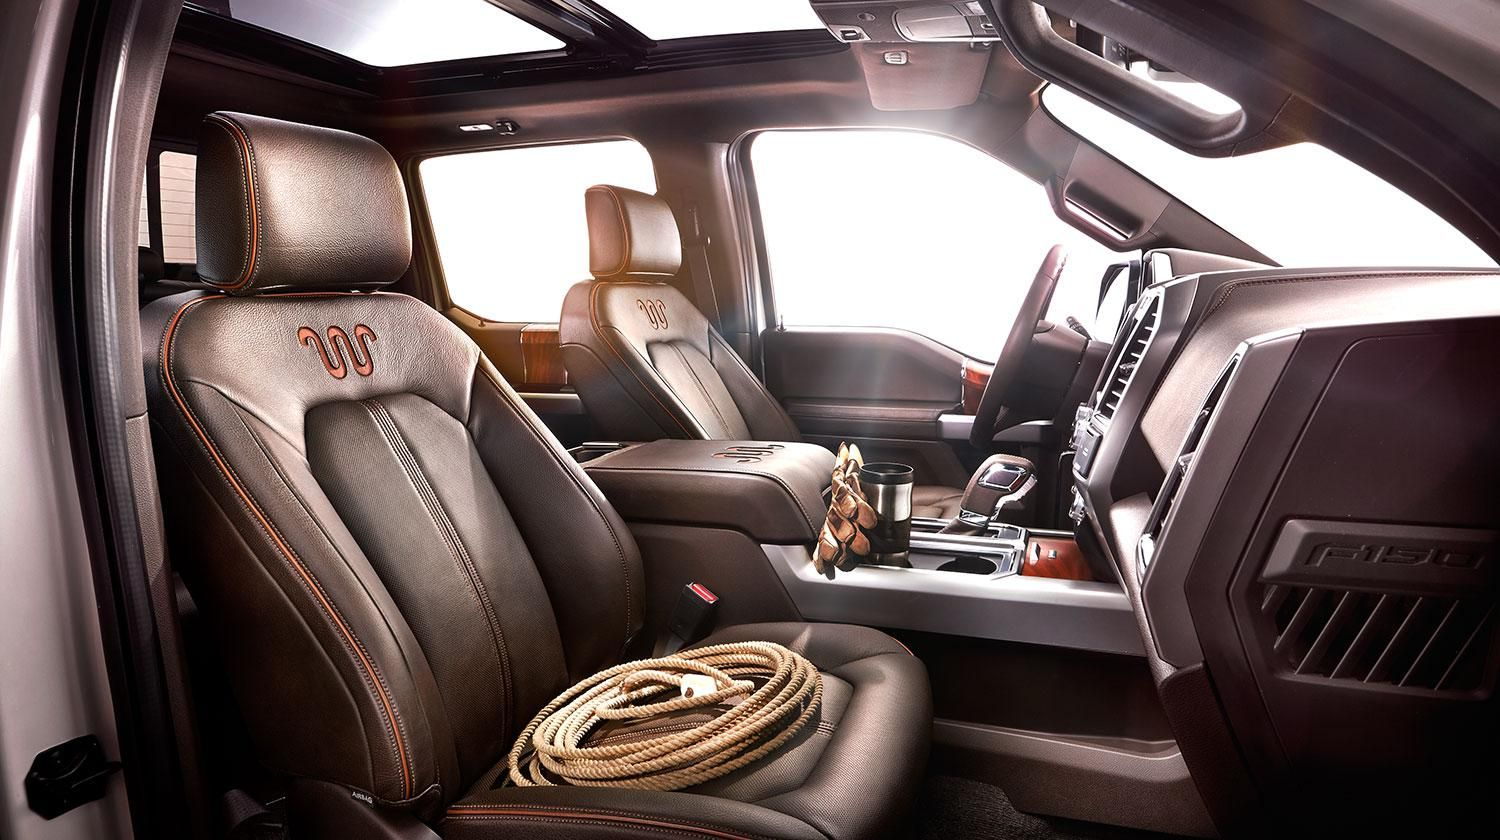 the new 2015 f 150 king ranch interior jimmy granger ford stonewall - 2015 Ford F150 Fx4 Interior